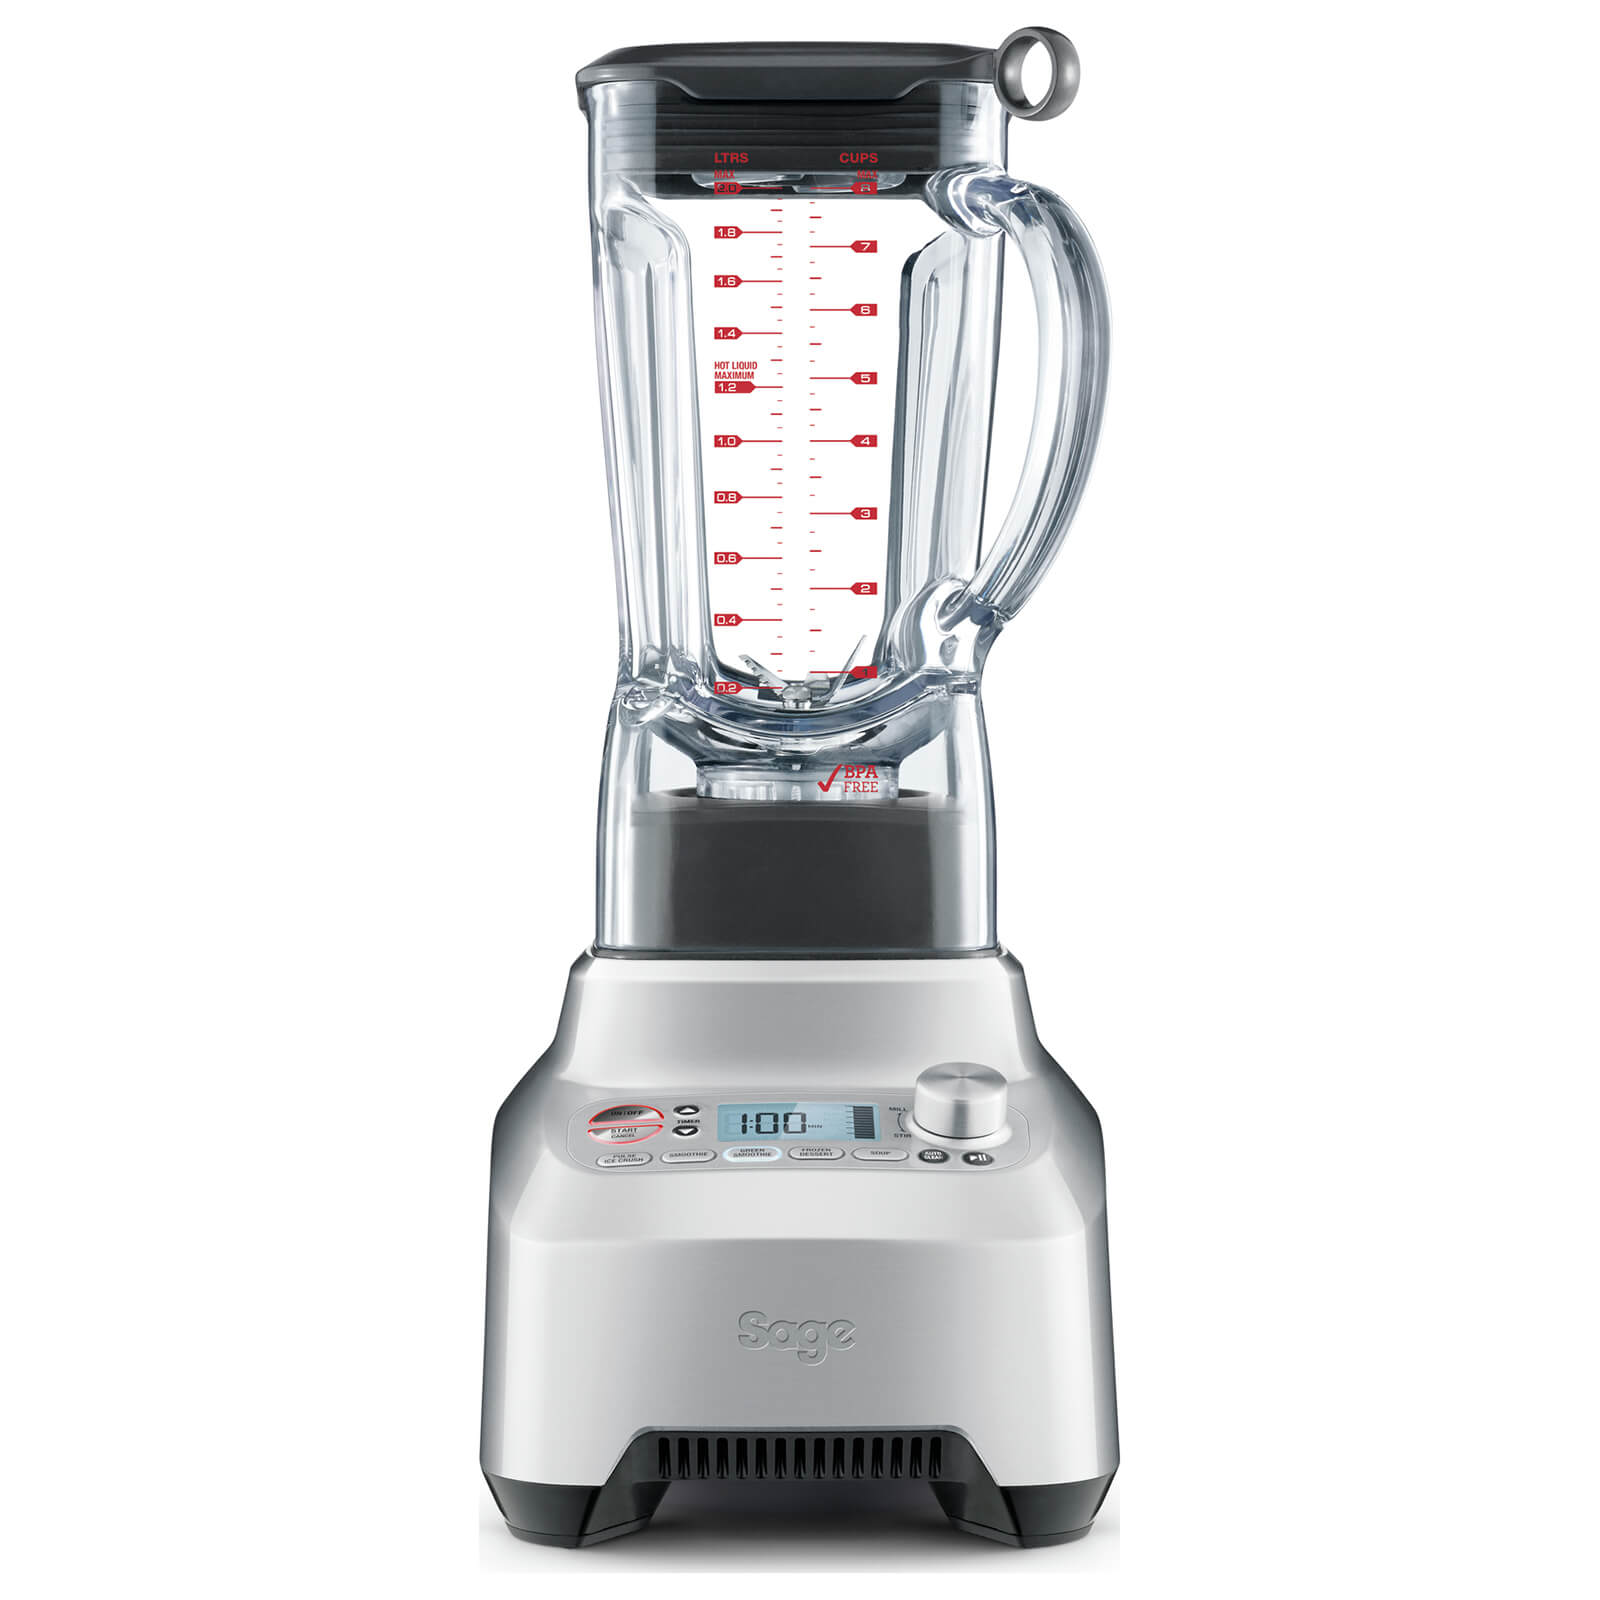 Sage by Heston Blumenthal BBL915UK The Boss Blender - Silver